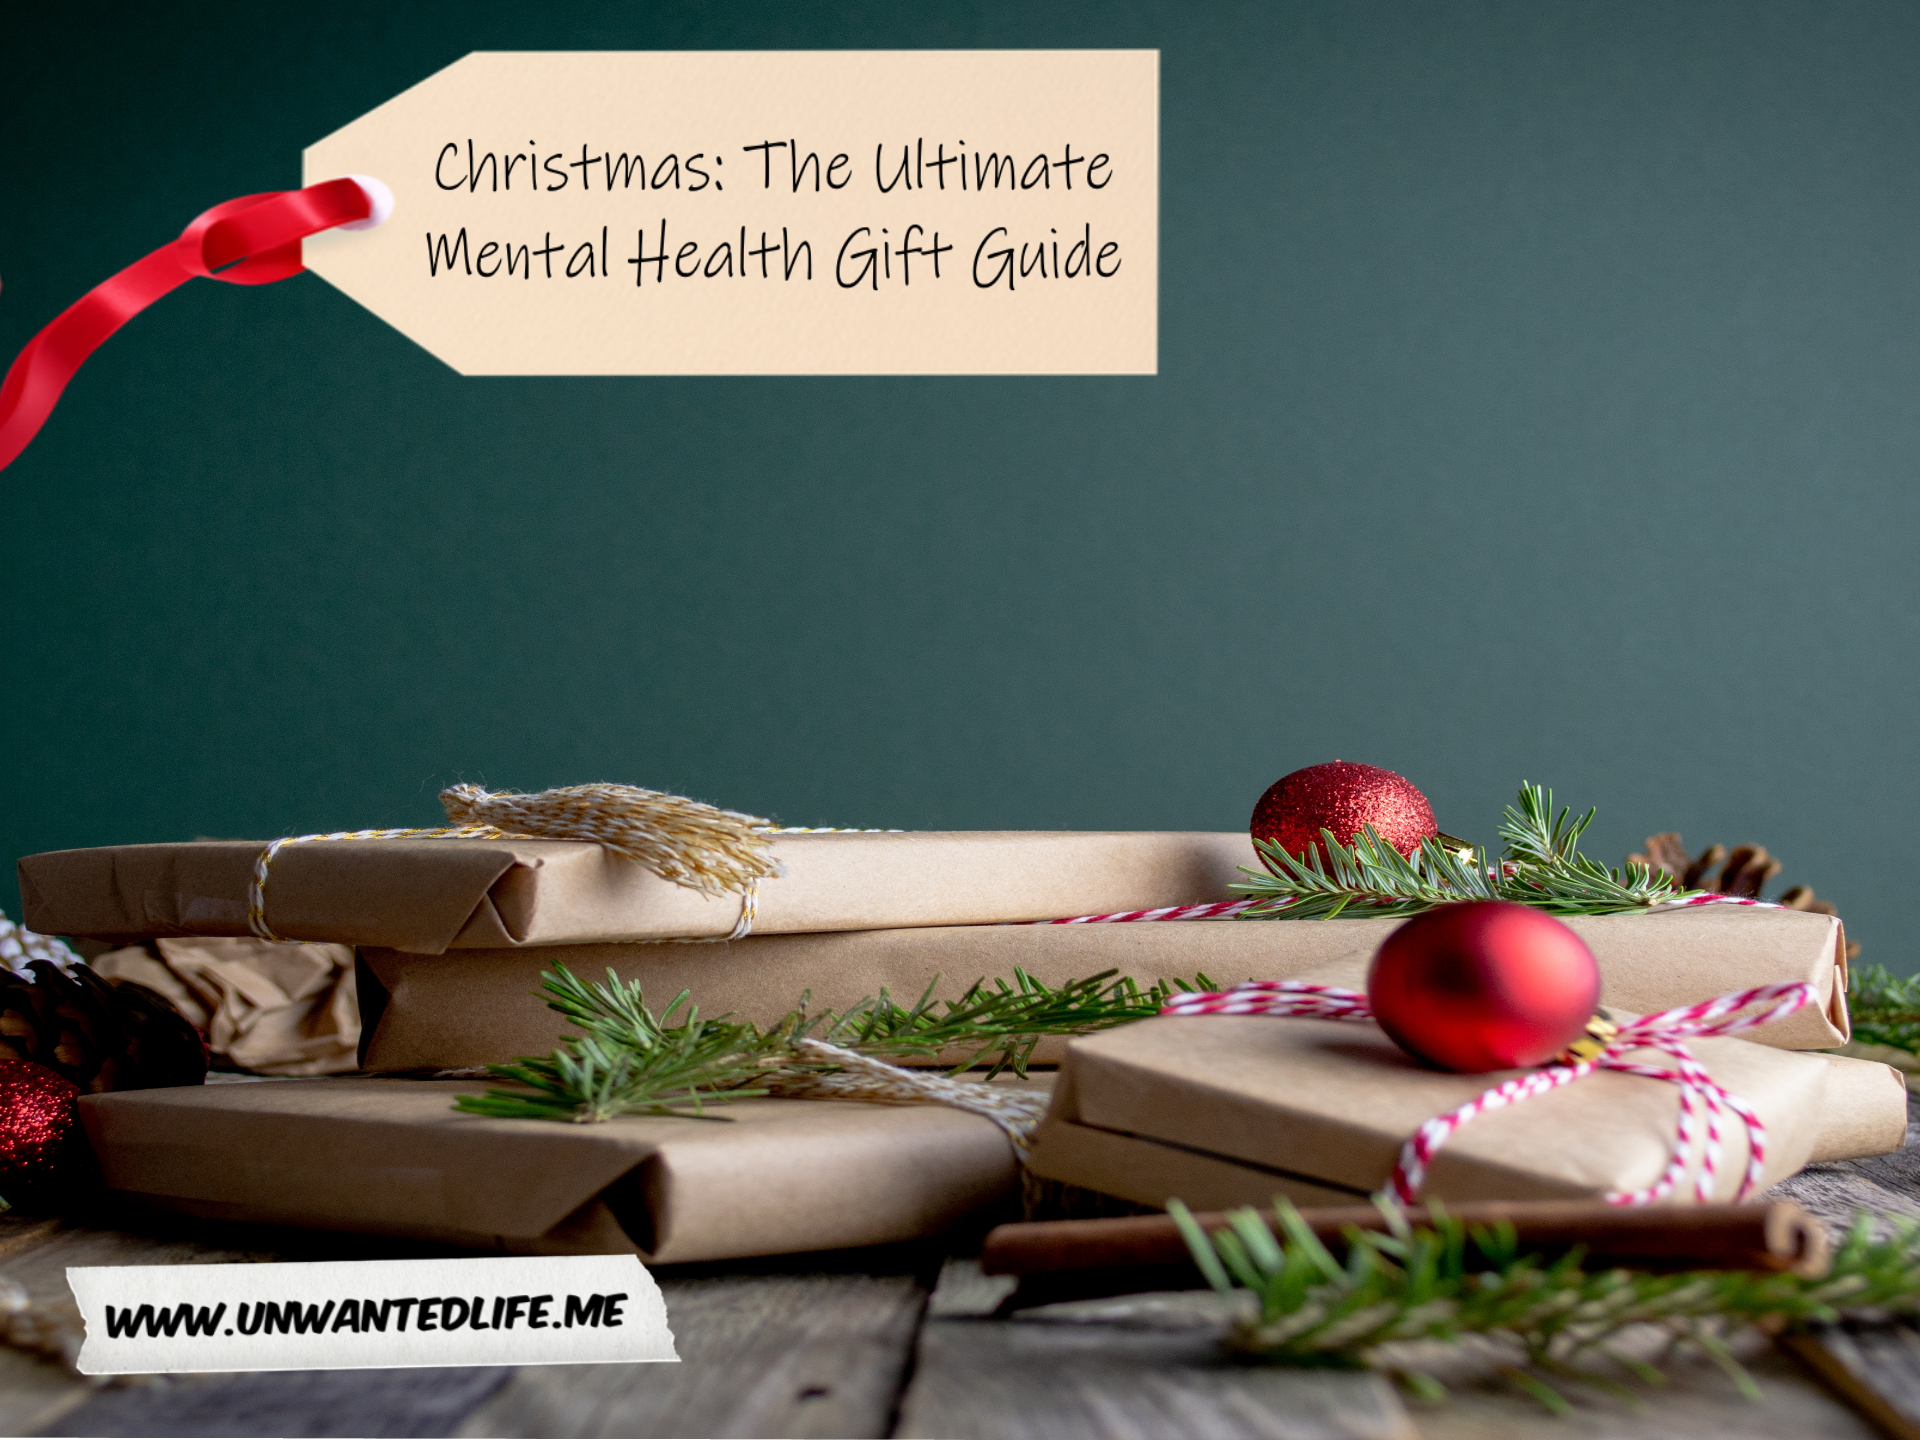 Christmas: The Ultimate Mental Health Gift Guide | Wellbeing, Wellness, and Xmas | Unwanted Life